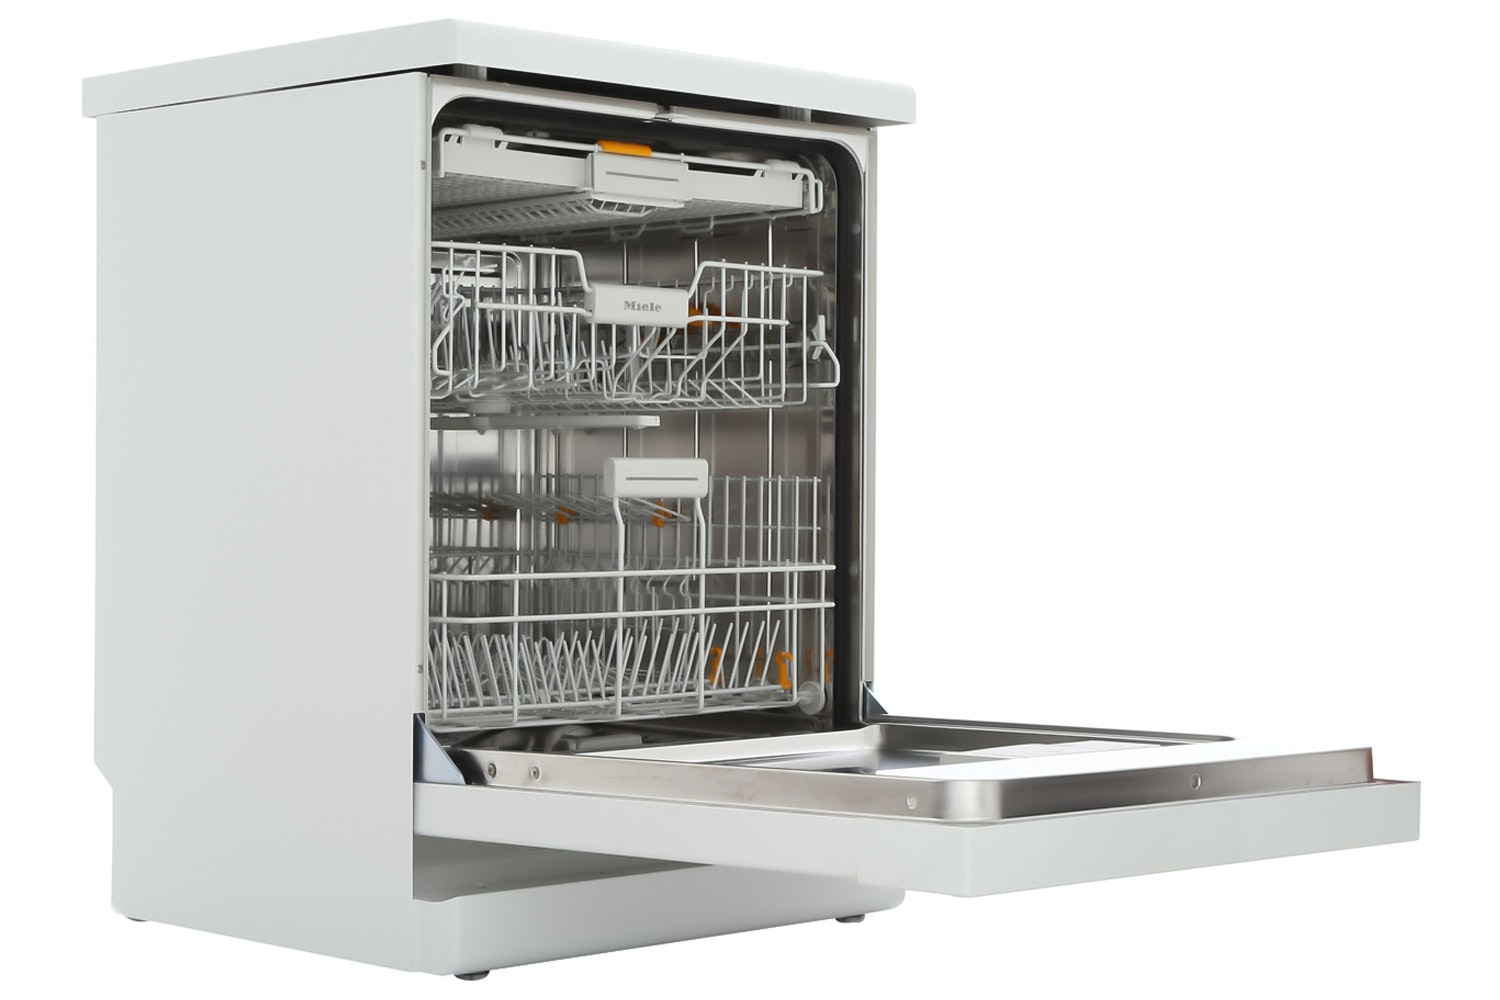 Miele G 6000 SC Jubilee A+++  Freestanding dishwashers   with 3D cutlery tray and energy efficiency class A+++ for maximum convenience